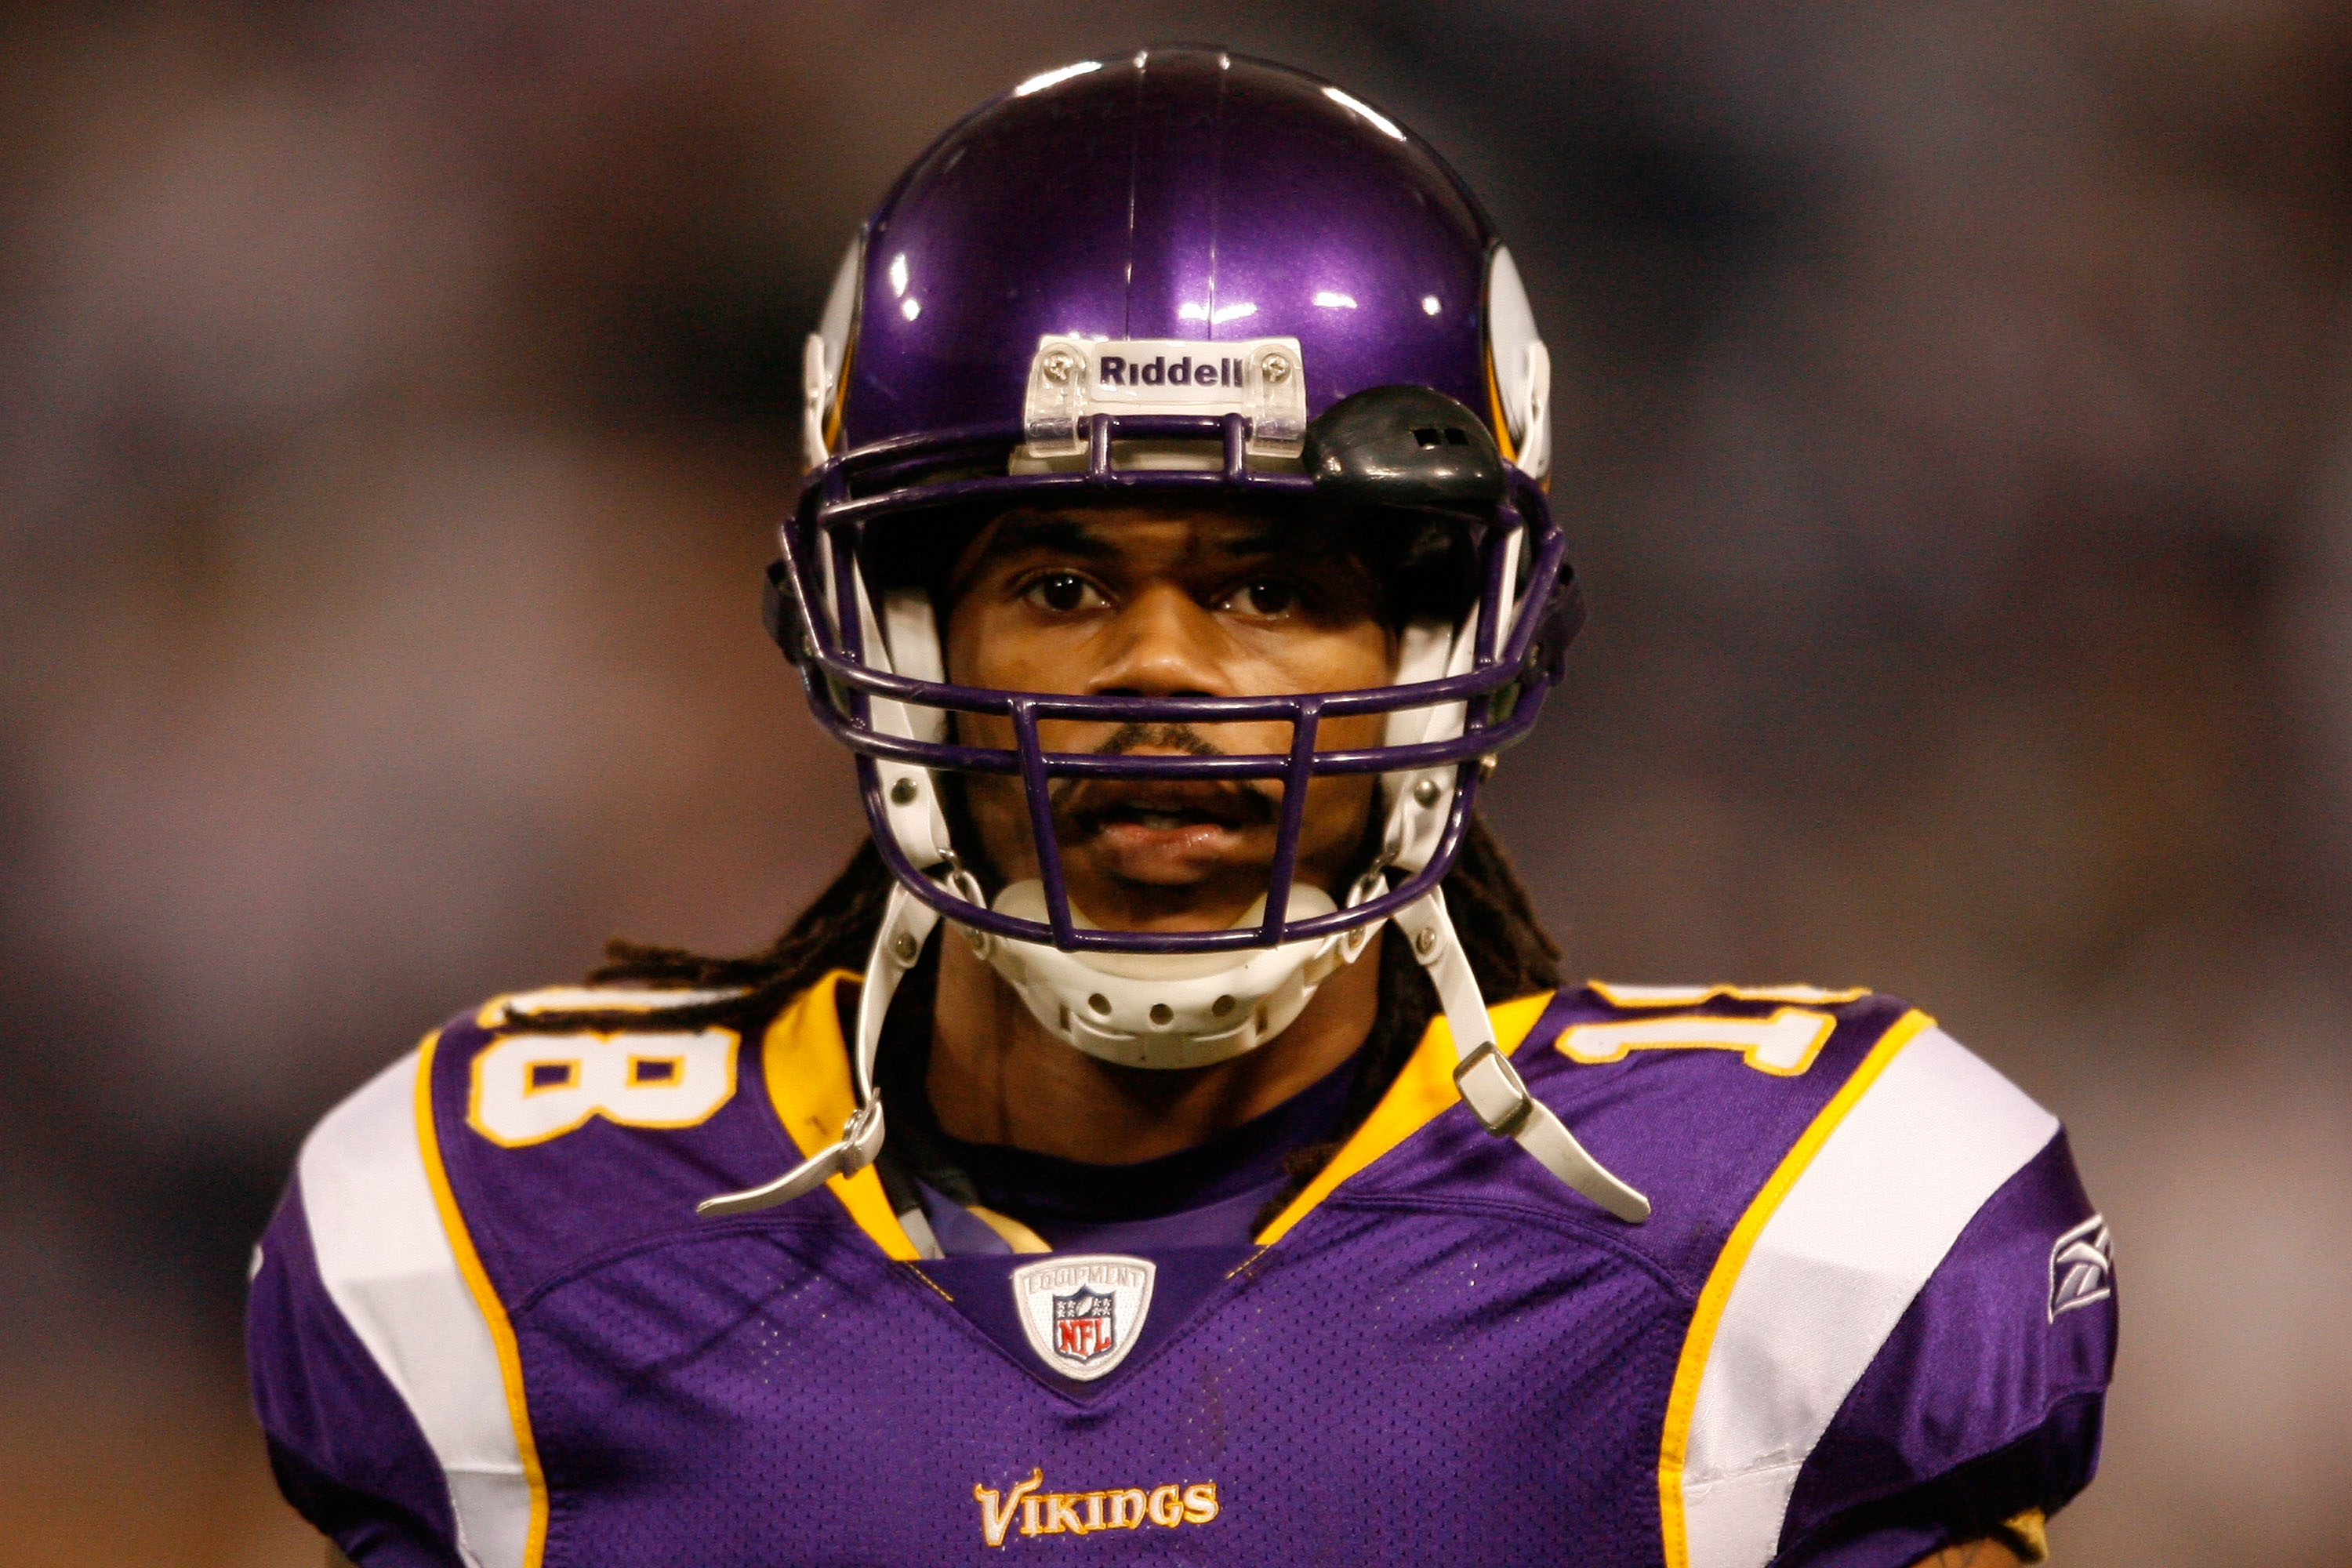 MINNEAPOLIS - JANUARY 17:  Sidney Rice #18 of the Minnesota Vikings looks on before playing against the Dallas Cowboys during the NFC Divisional Playoff Game at Hubert H. Humphrey Metrodome on January 17, 2010 in Minneapolis, Minnesota.  (Photo by Elsa/Ge